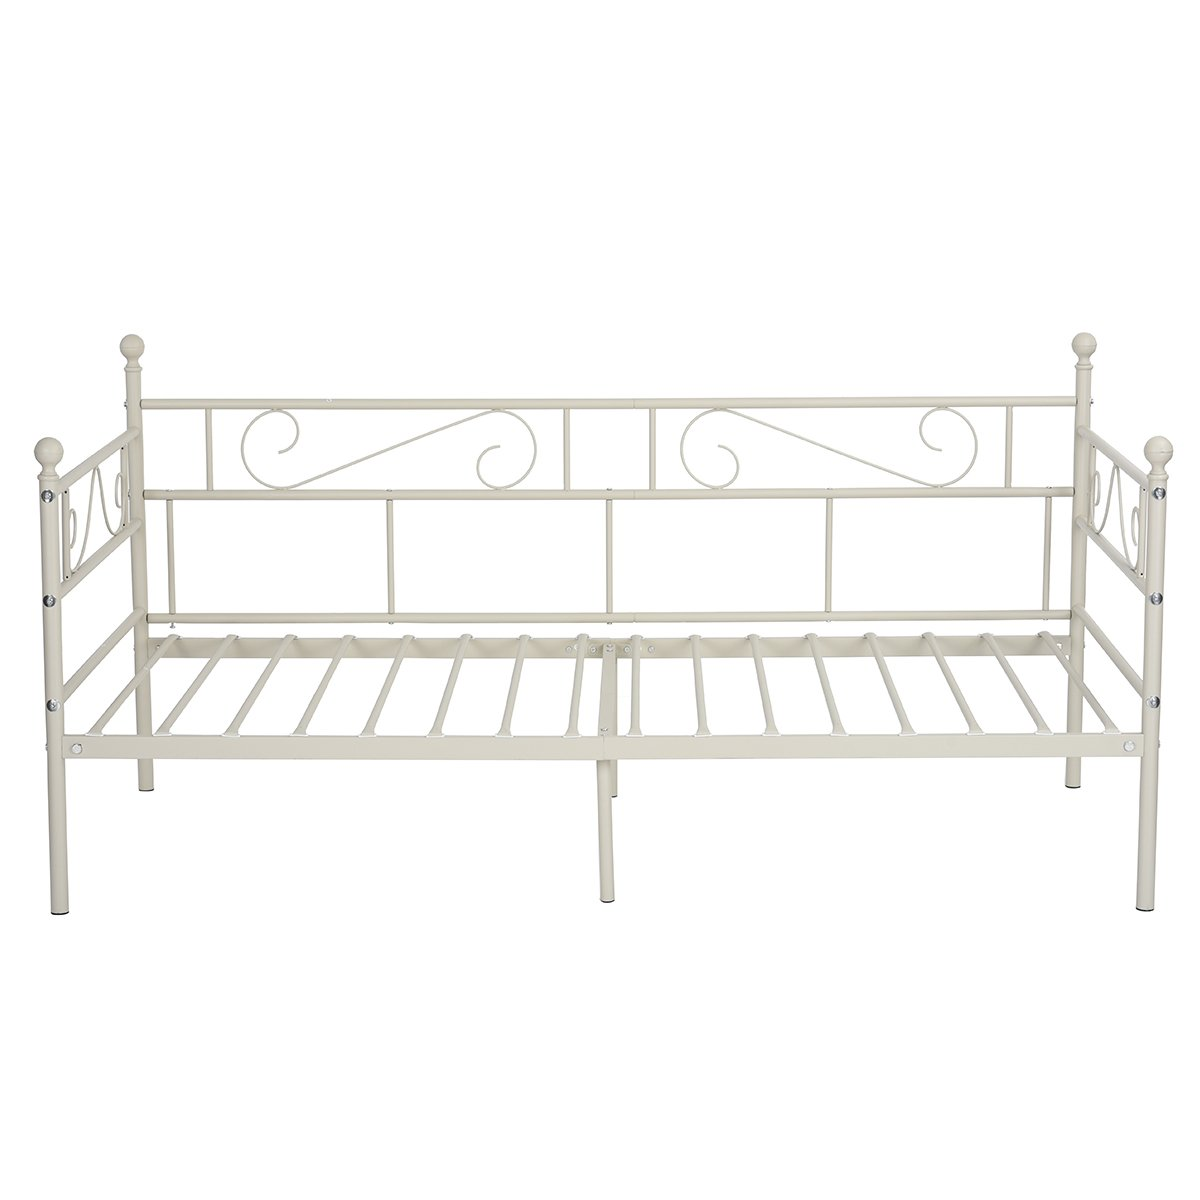 GreenForest Daybed Twin Bed Frame with Headboard and Stable Steel Slats Mattress Platform Base Boxspring Replacement Easy Assembly for Living Room Guest Room(Light Beige White)